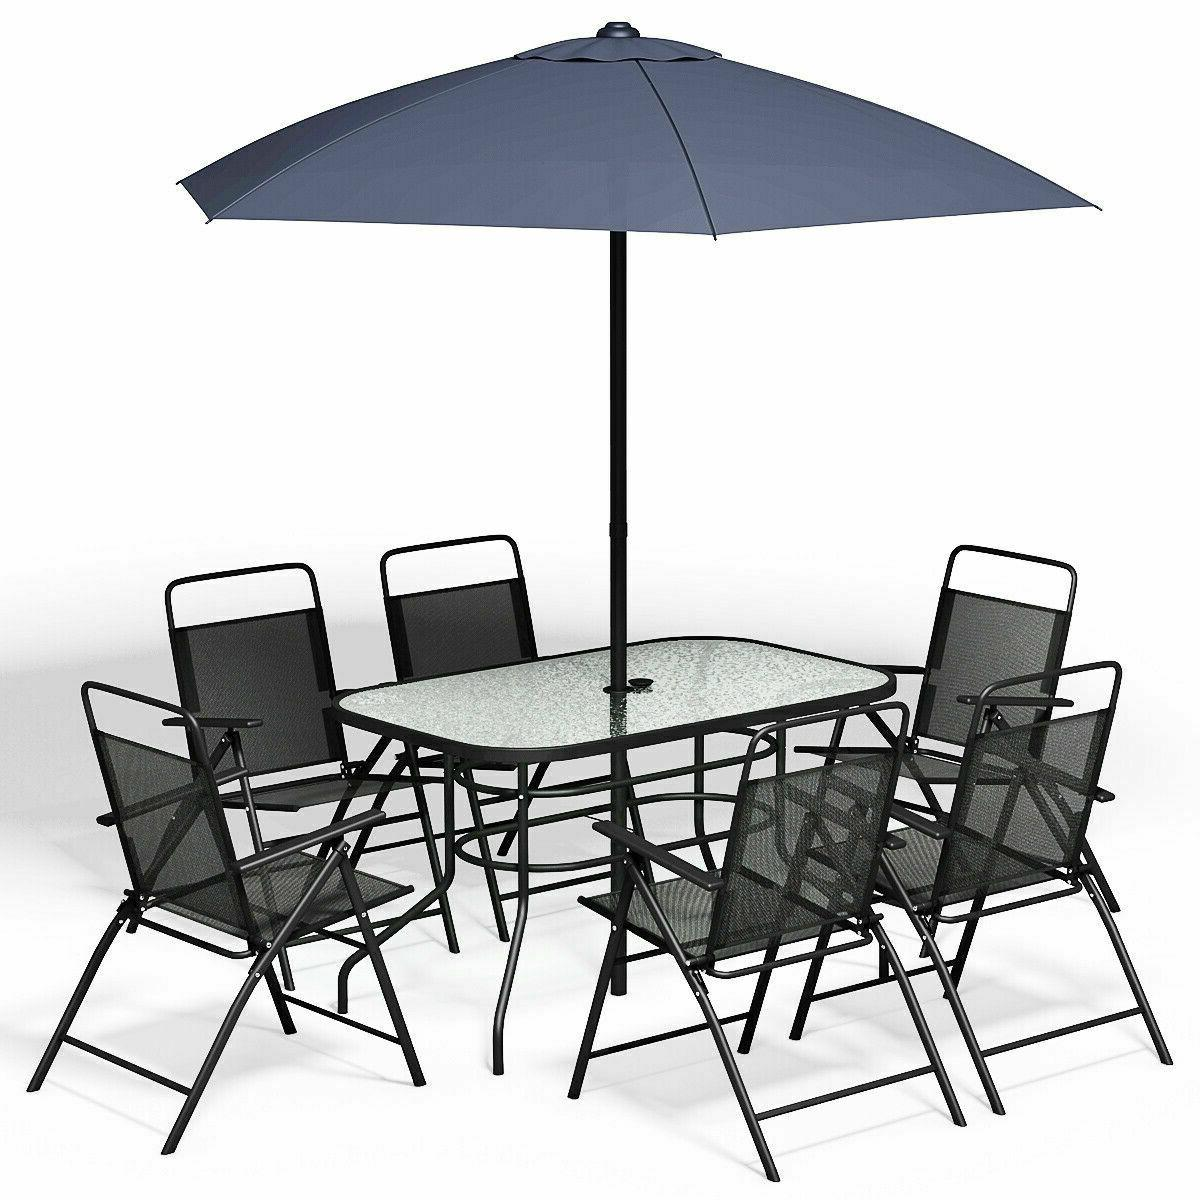 Patio Furniture Sets Clearance With Umbrella RV Conversation